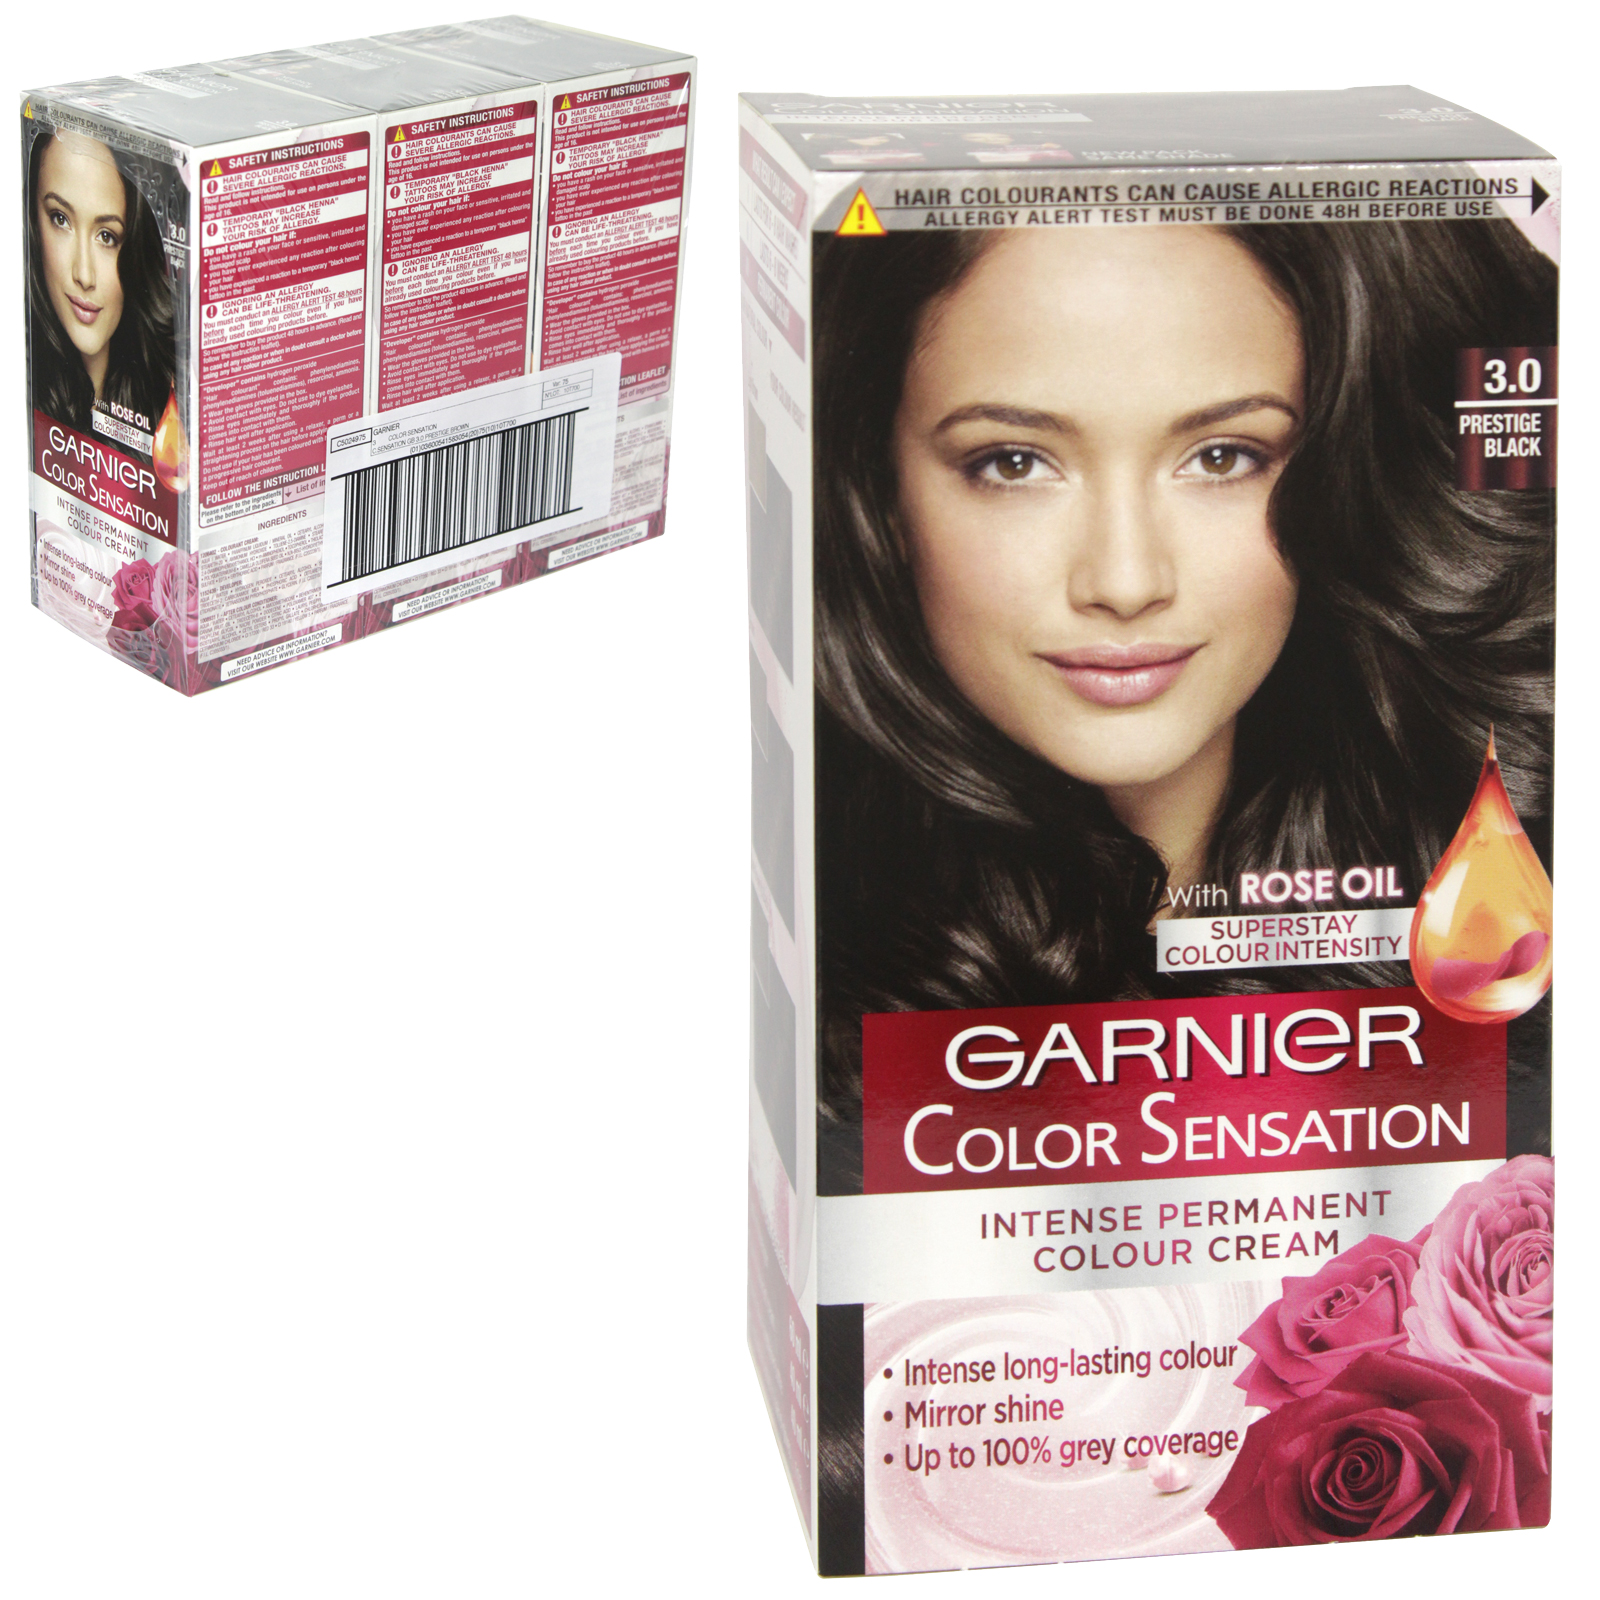 GARNIER HAIR COLOUR - PRESTIGE BLACK 3.0 - X3